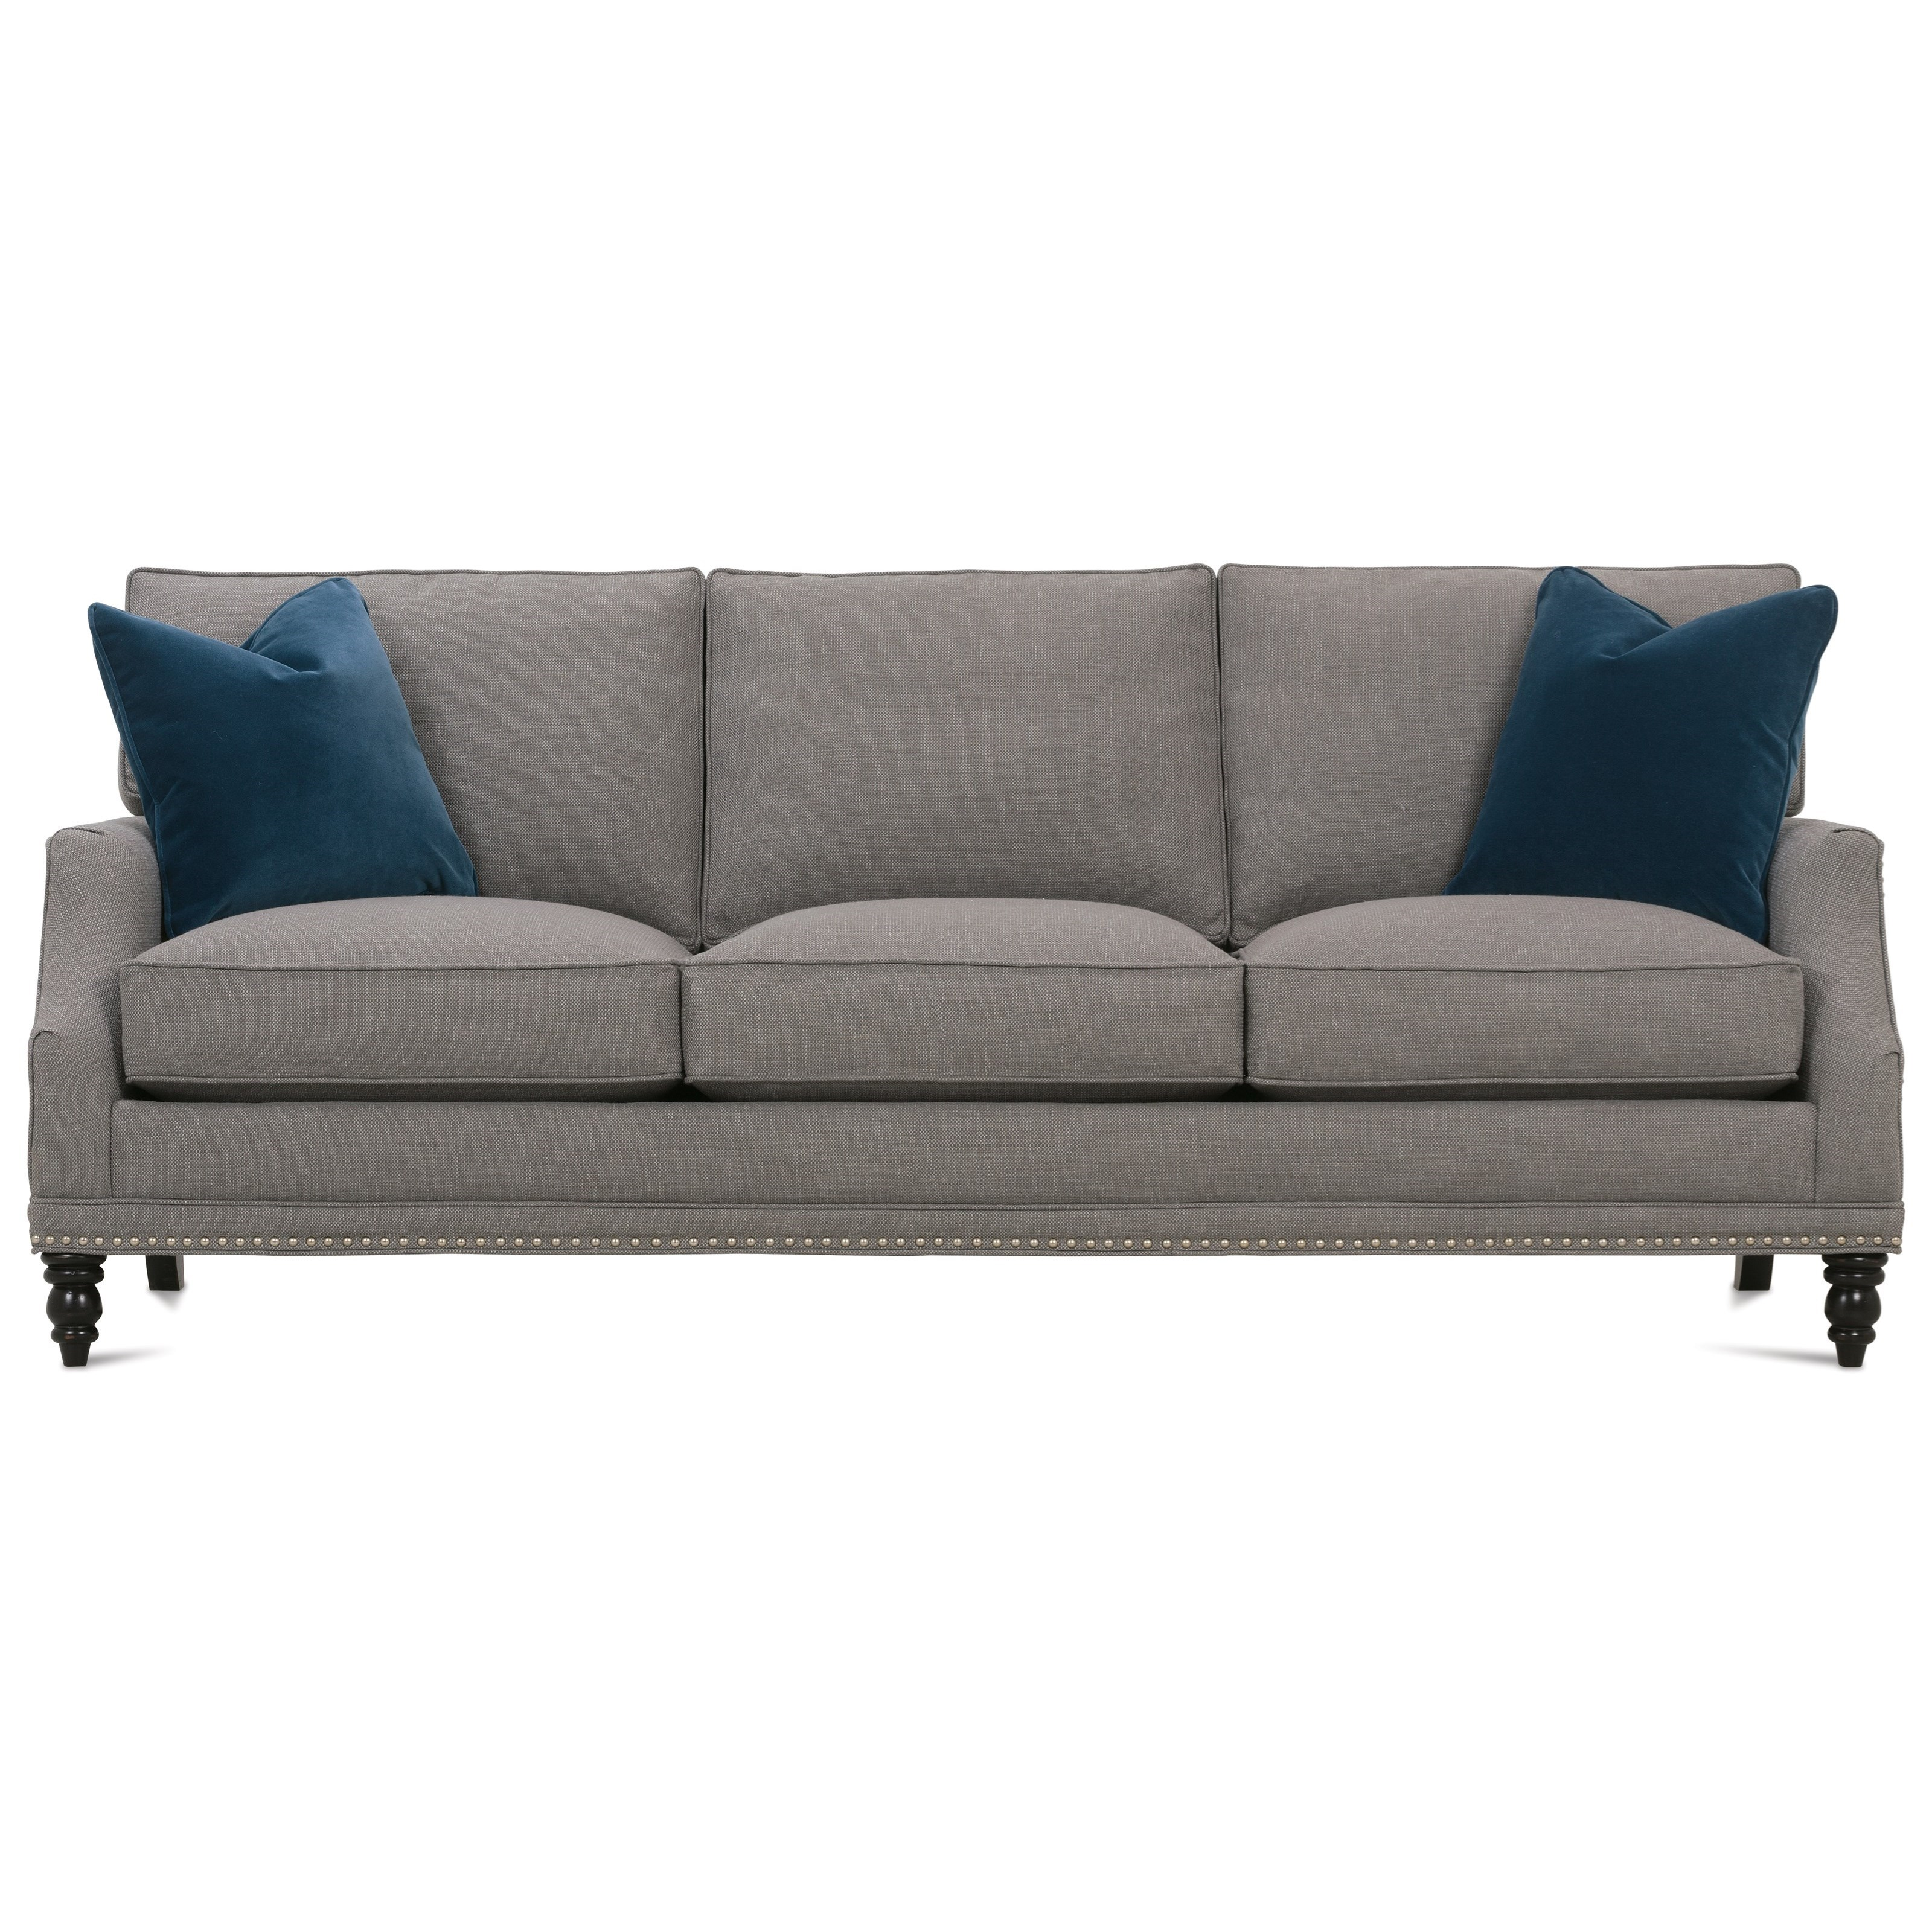 My Style II Customizable Transitional Sofa Turned Legs by Rowe at Baer's Furniture